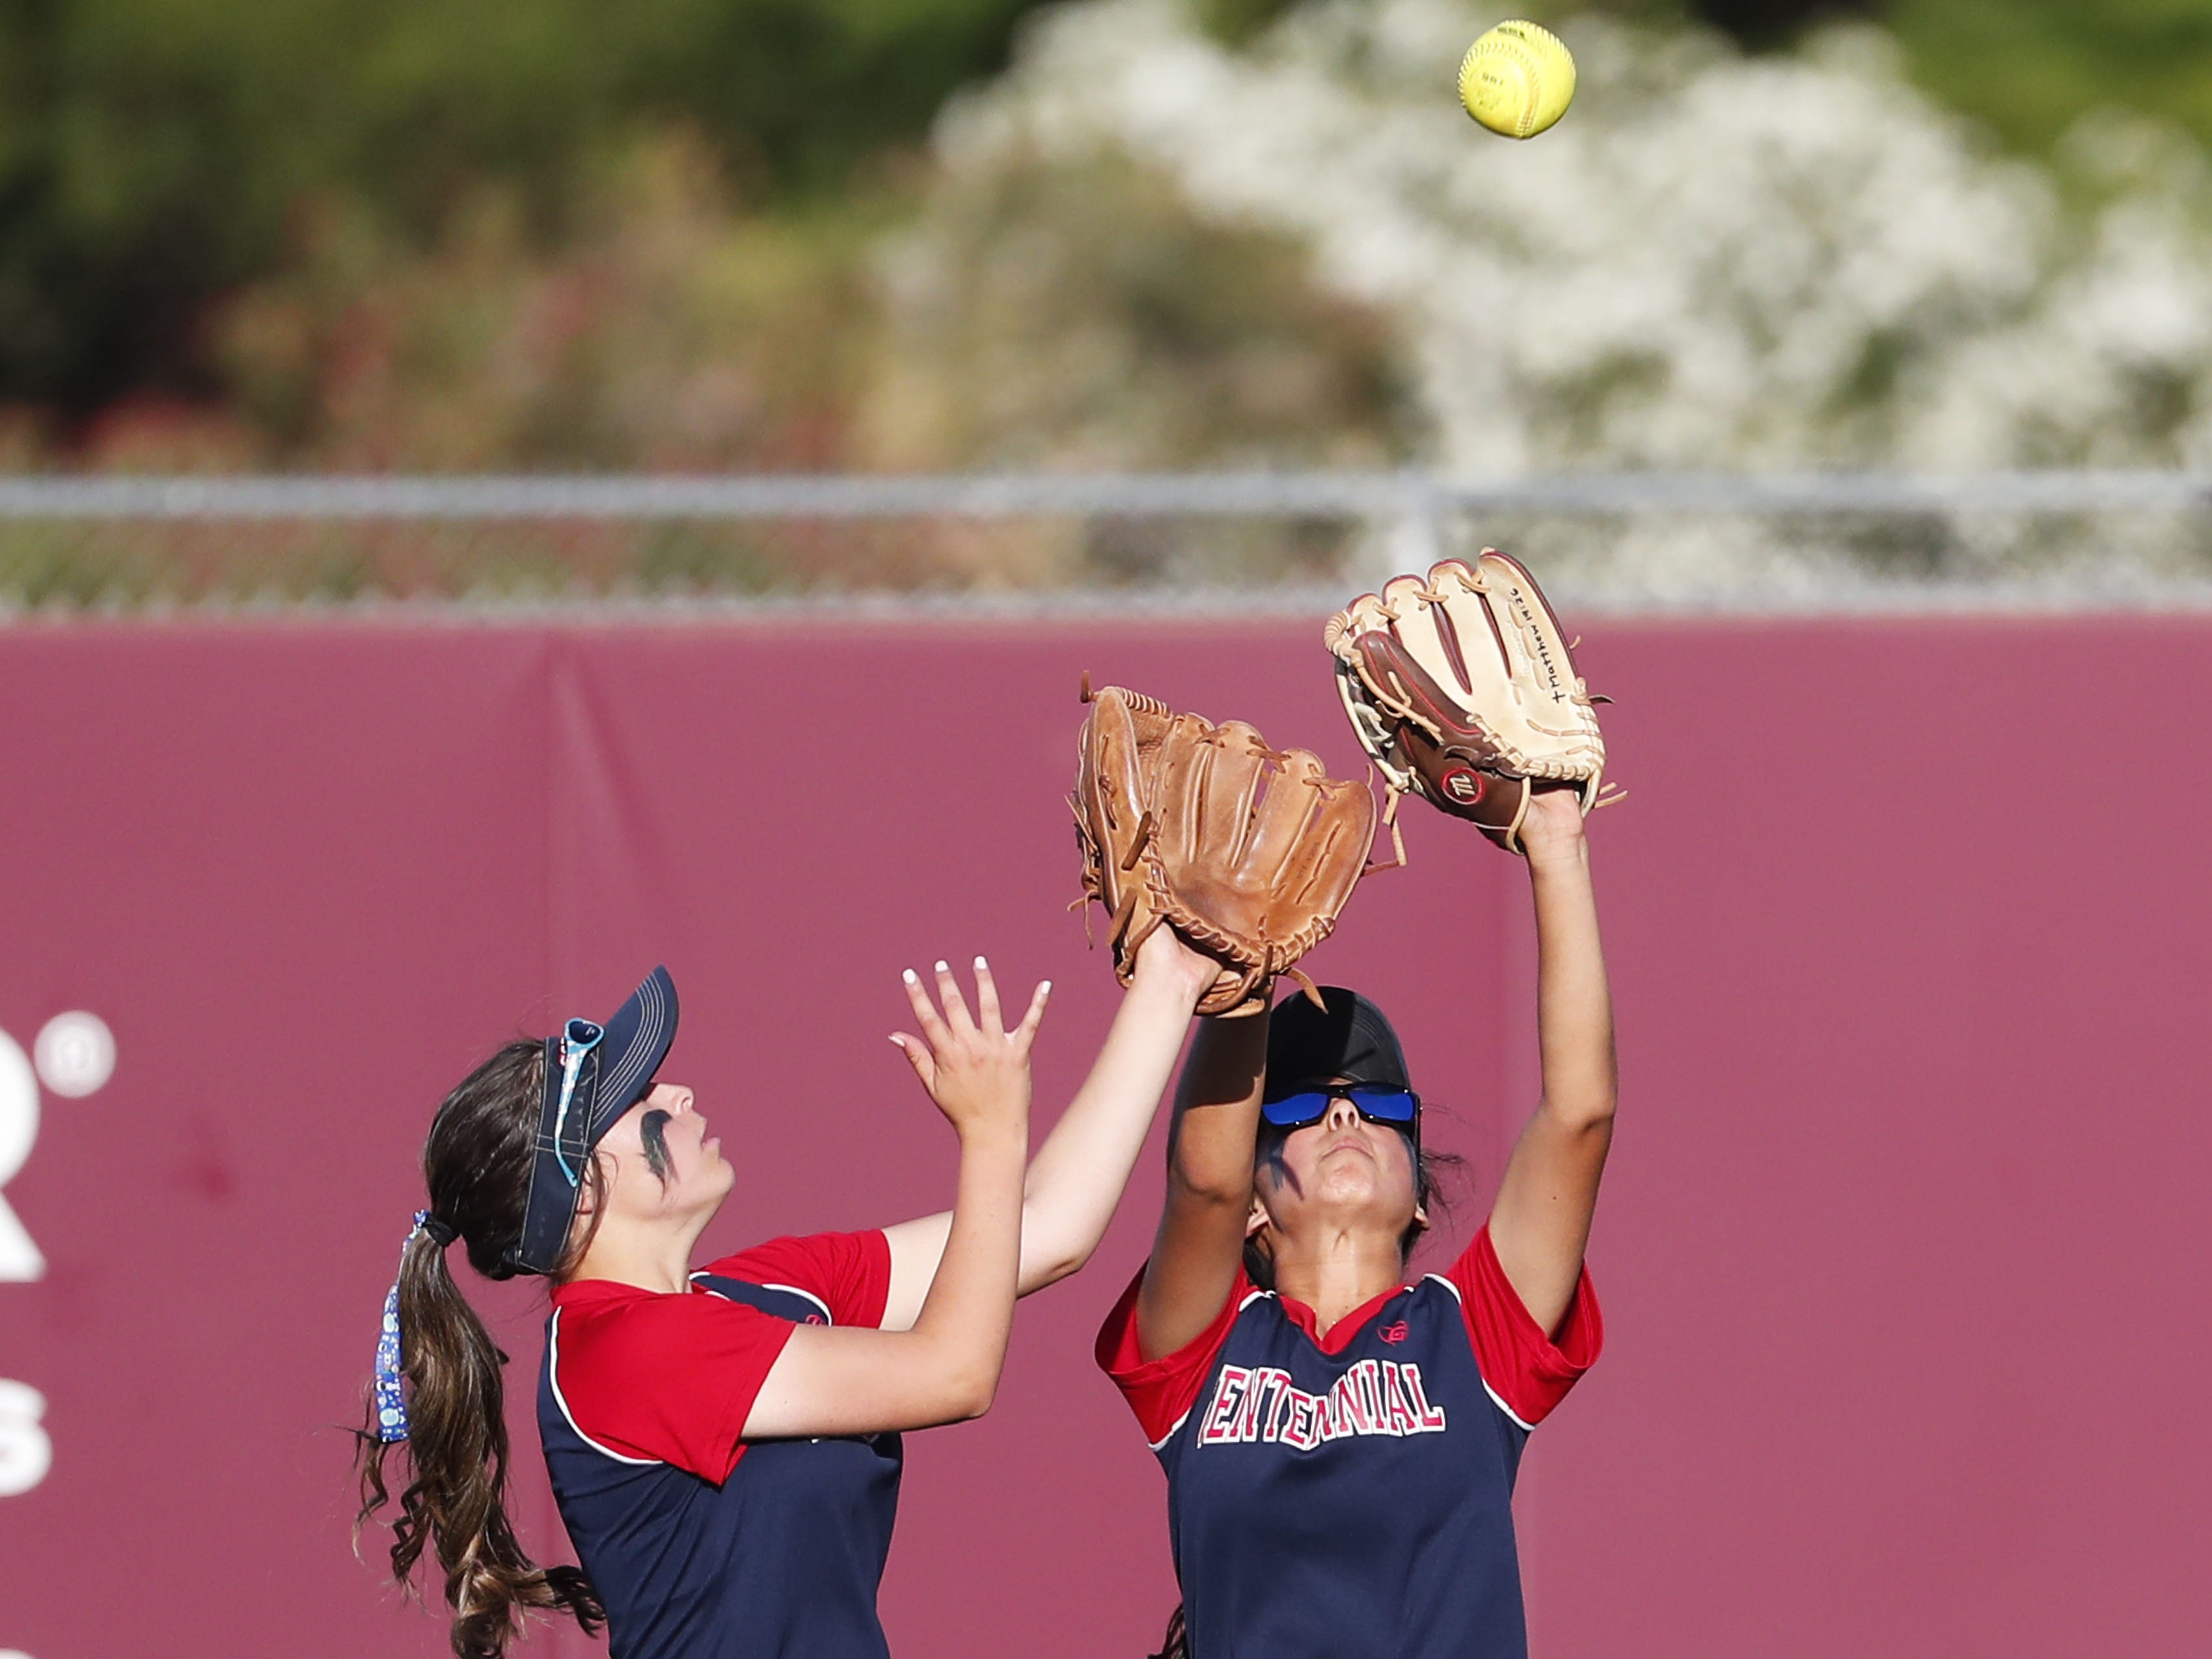 Centennial center fielder Jaydin Gonzalez (left) and right fielder Natalie Vasquez collide while catching a ball by Ironwood Ridge during the 5A State Softball Championship in Tempe, Ariz. May 13, 2019.